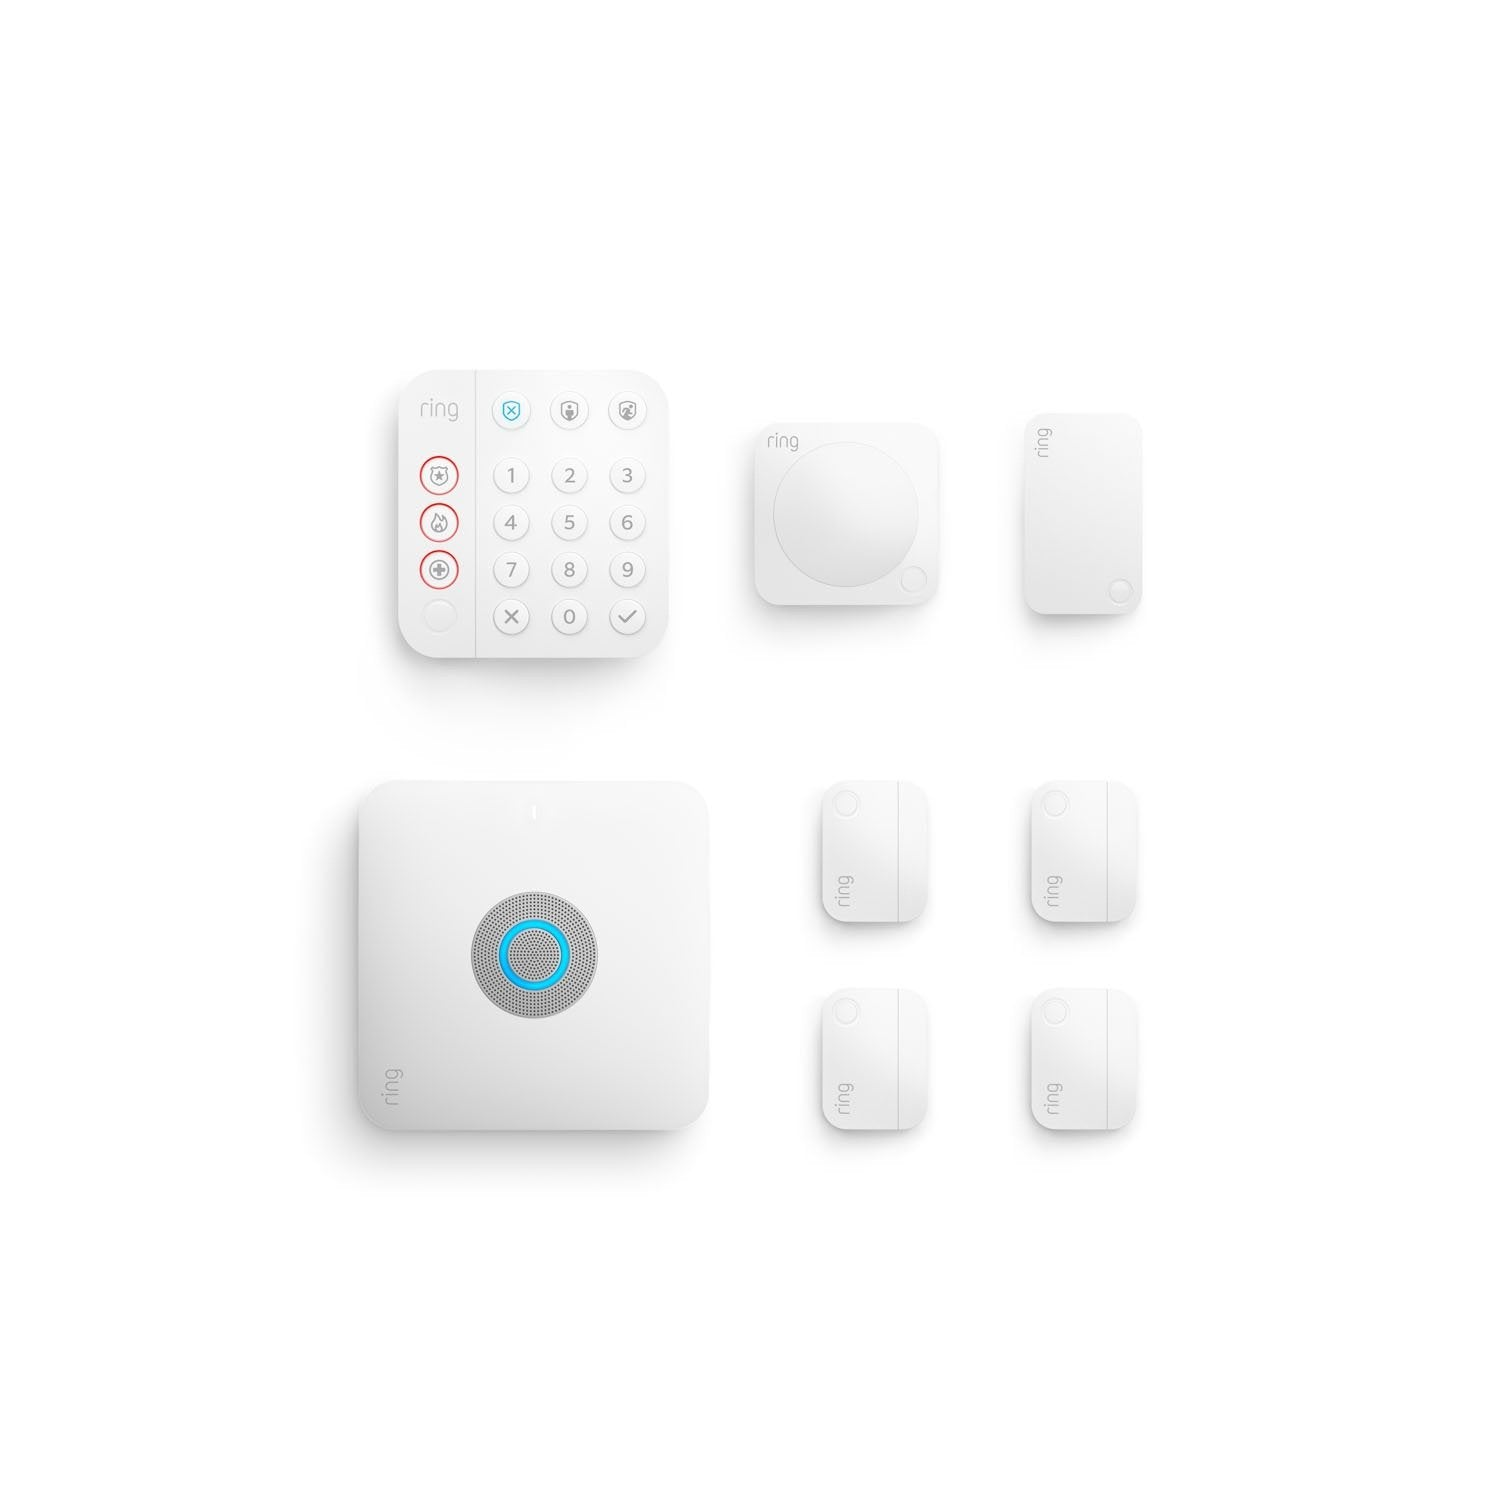 Alarm Pro Security Kit, 8-Piece (for built-in eero Wi-Fi 6 router) - White